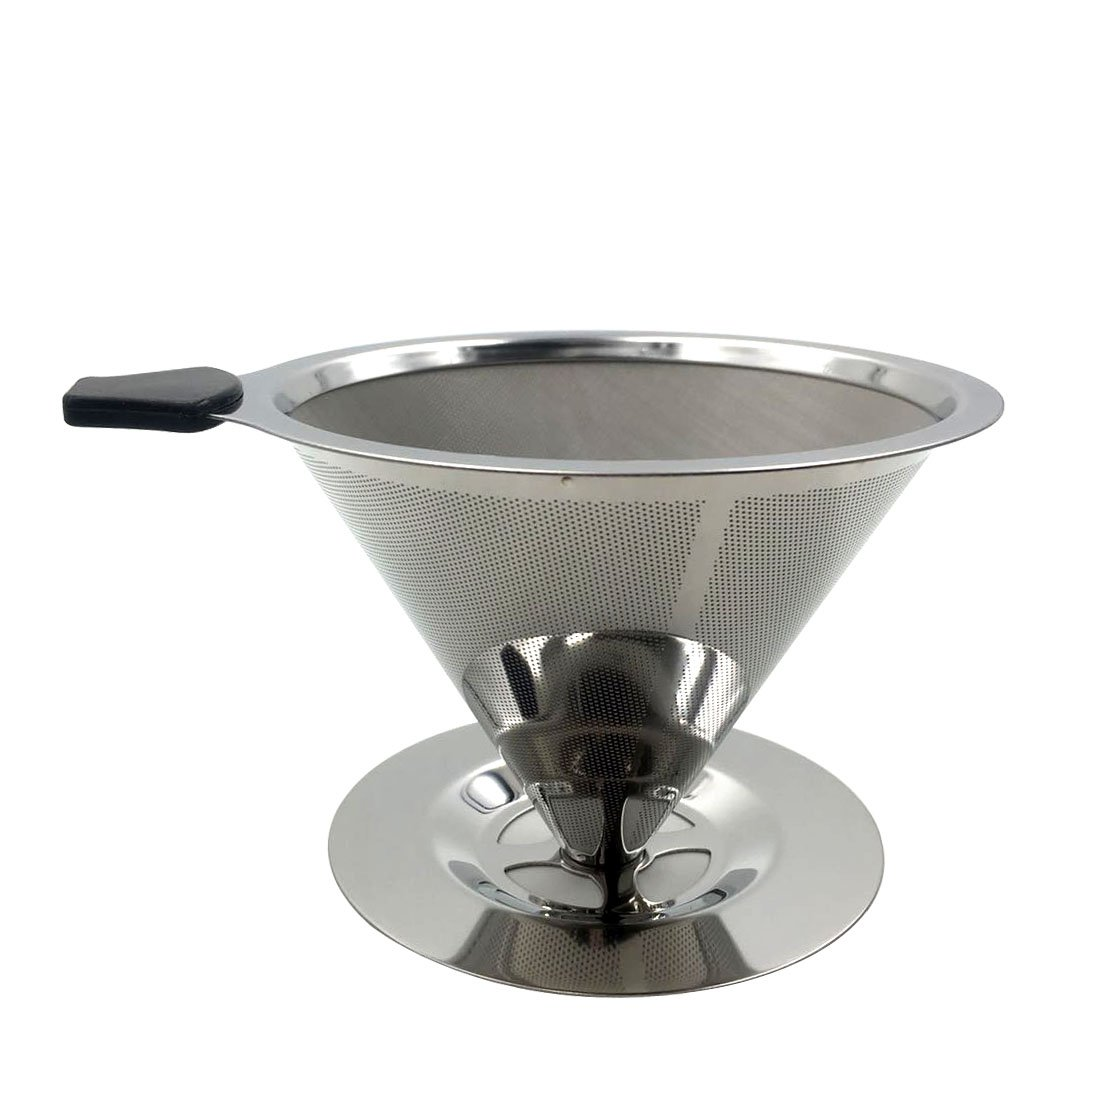 Stainless Steel Pour Over Coffee Dripper by Haotrend Permanent Reusable Paperless (304) Stainless Steel Cone Coffee Filter with Cup Stand - for Making 1-4 Cups